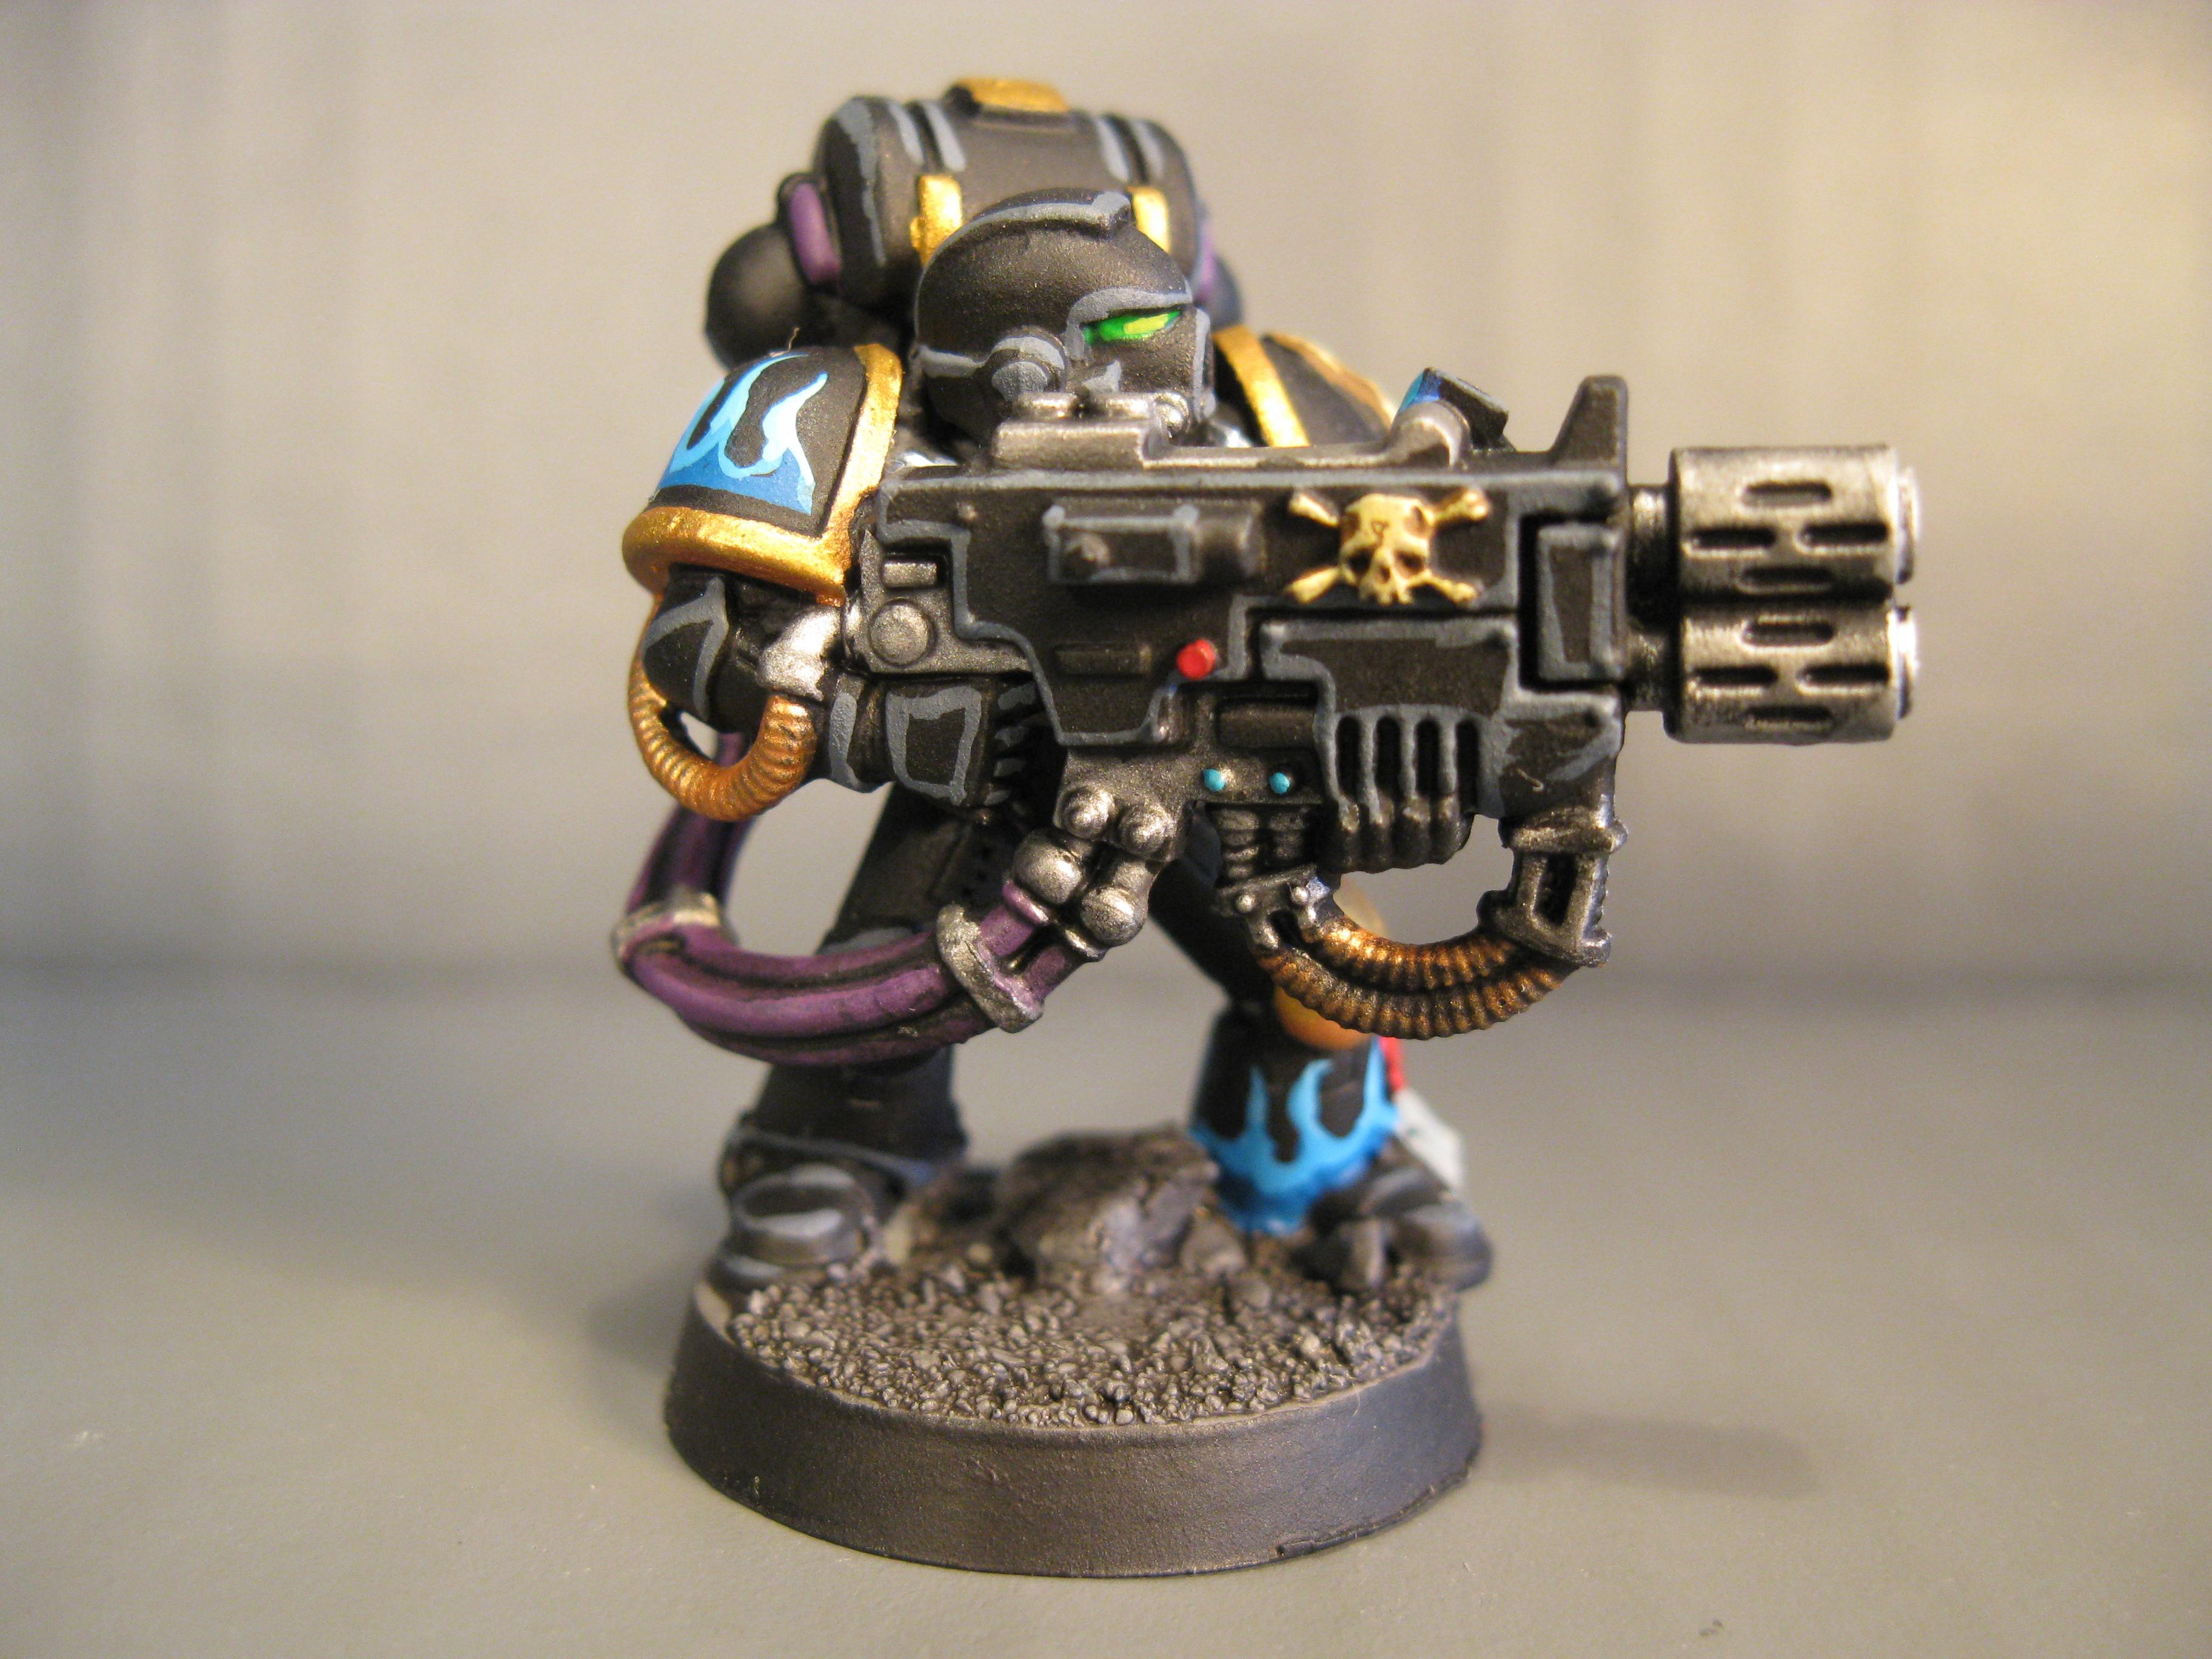 Black, Devistator, Flames, Multi Melta, Pro Painted, Space Marines, Warhammer 40,000